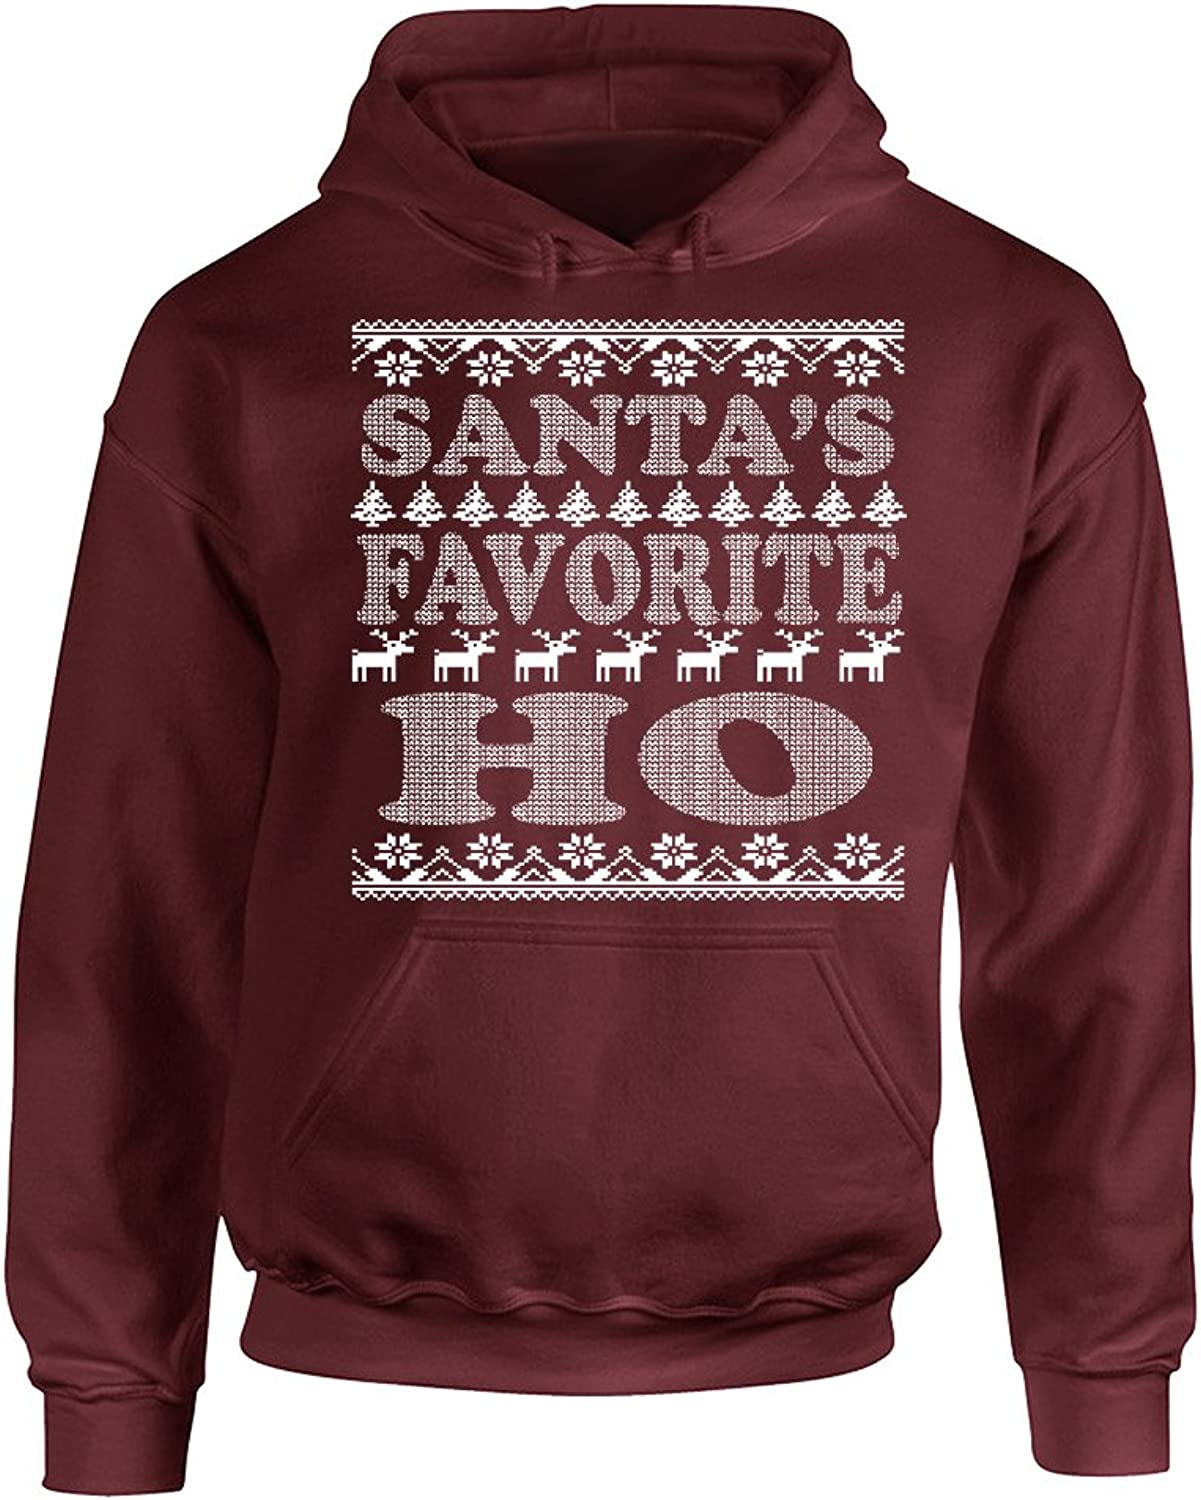 H/&T Shirt Hoodies for Women Men Christmas Gifts Shirts Youll Shoot Your Eye Out Xmas Ugly